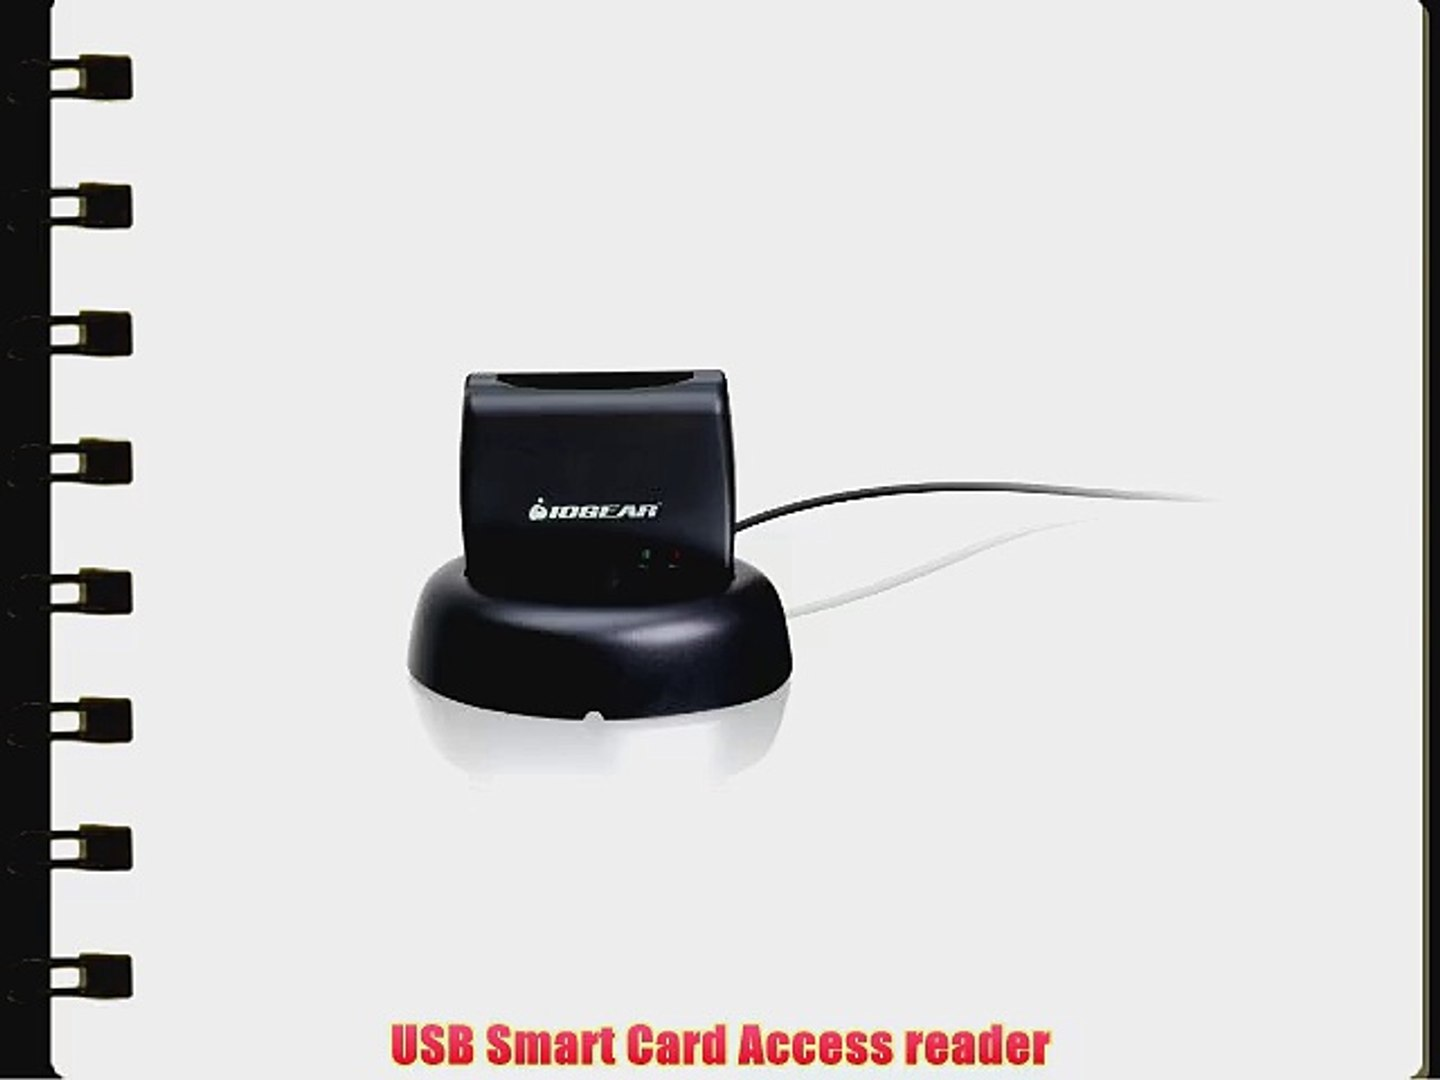 KEYFIVE SMART CARD TERMINAL WINDOWS 7 DRIVERS DOWNLOAD